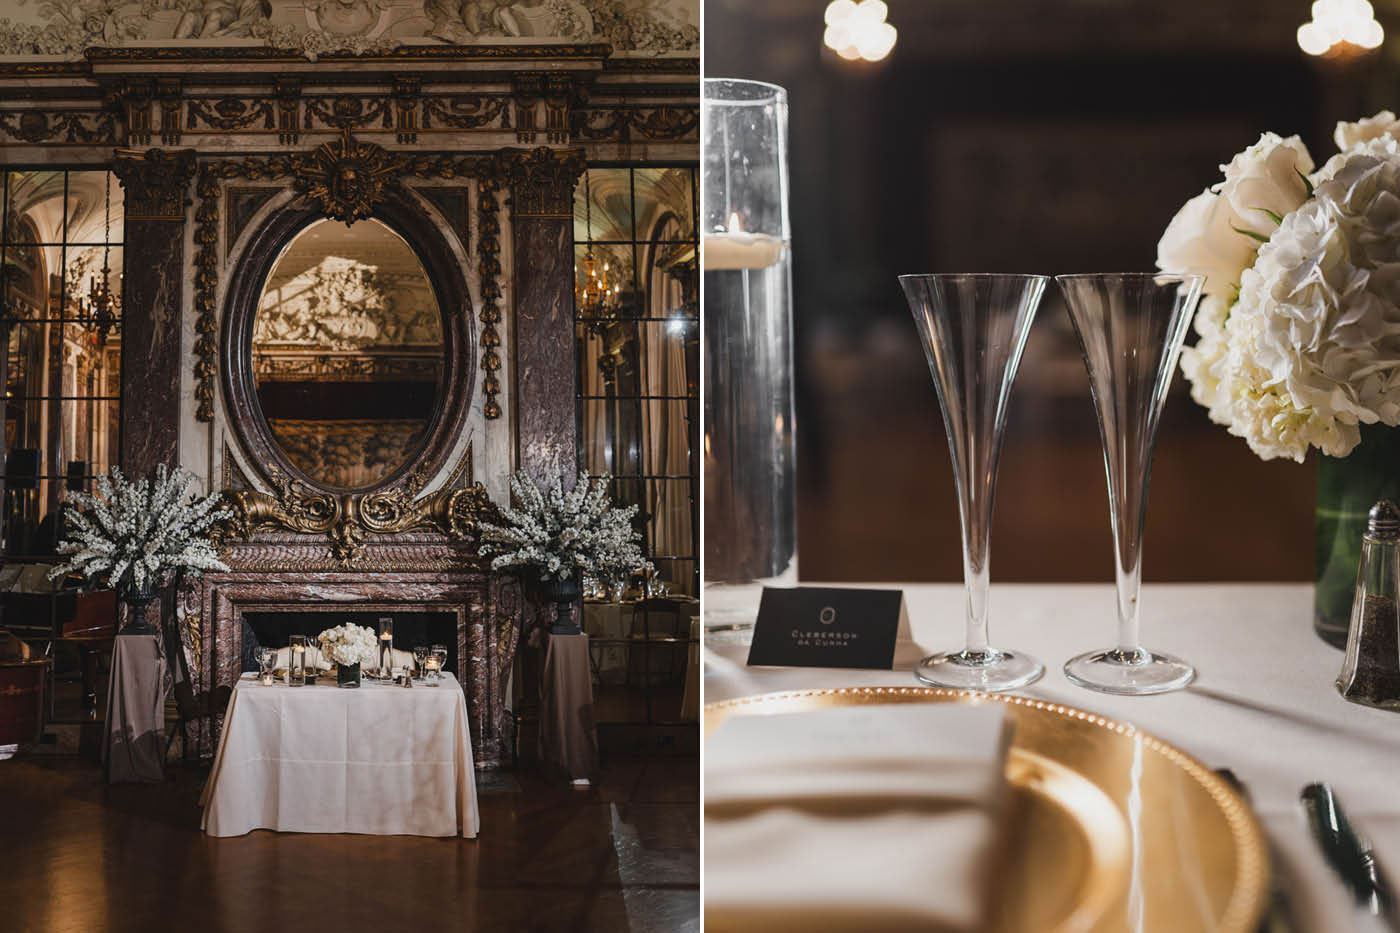 table set at the James Burden Kahn Mansion by Weddings by Hanel